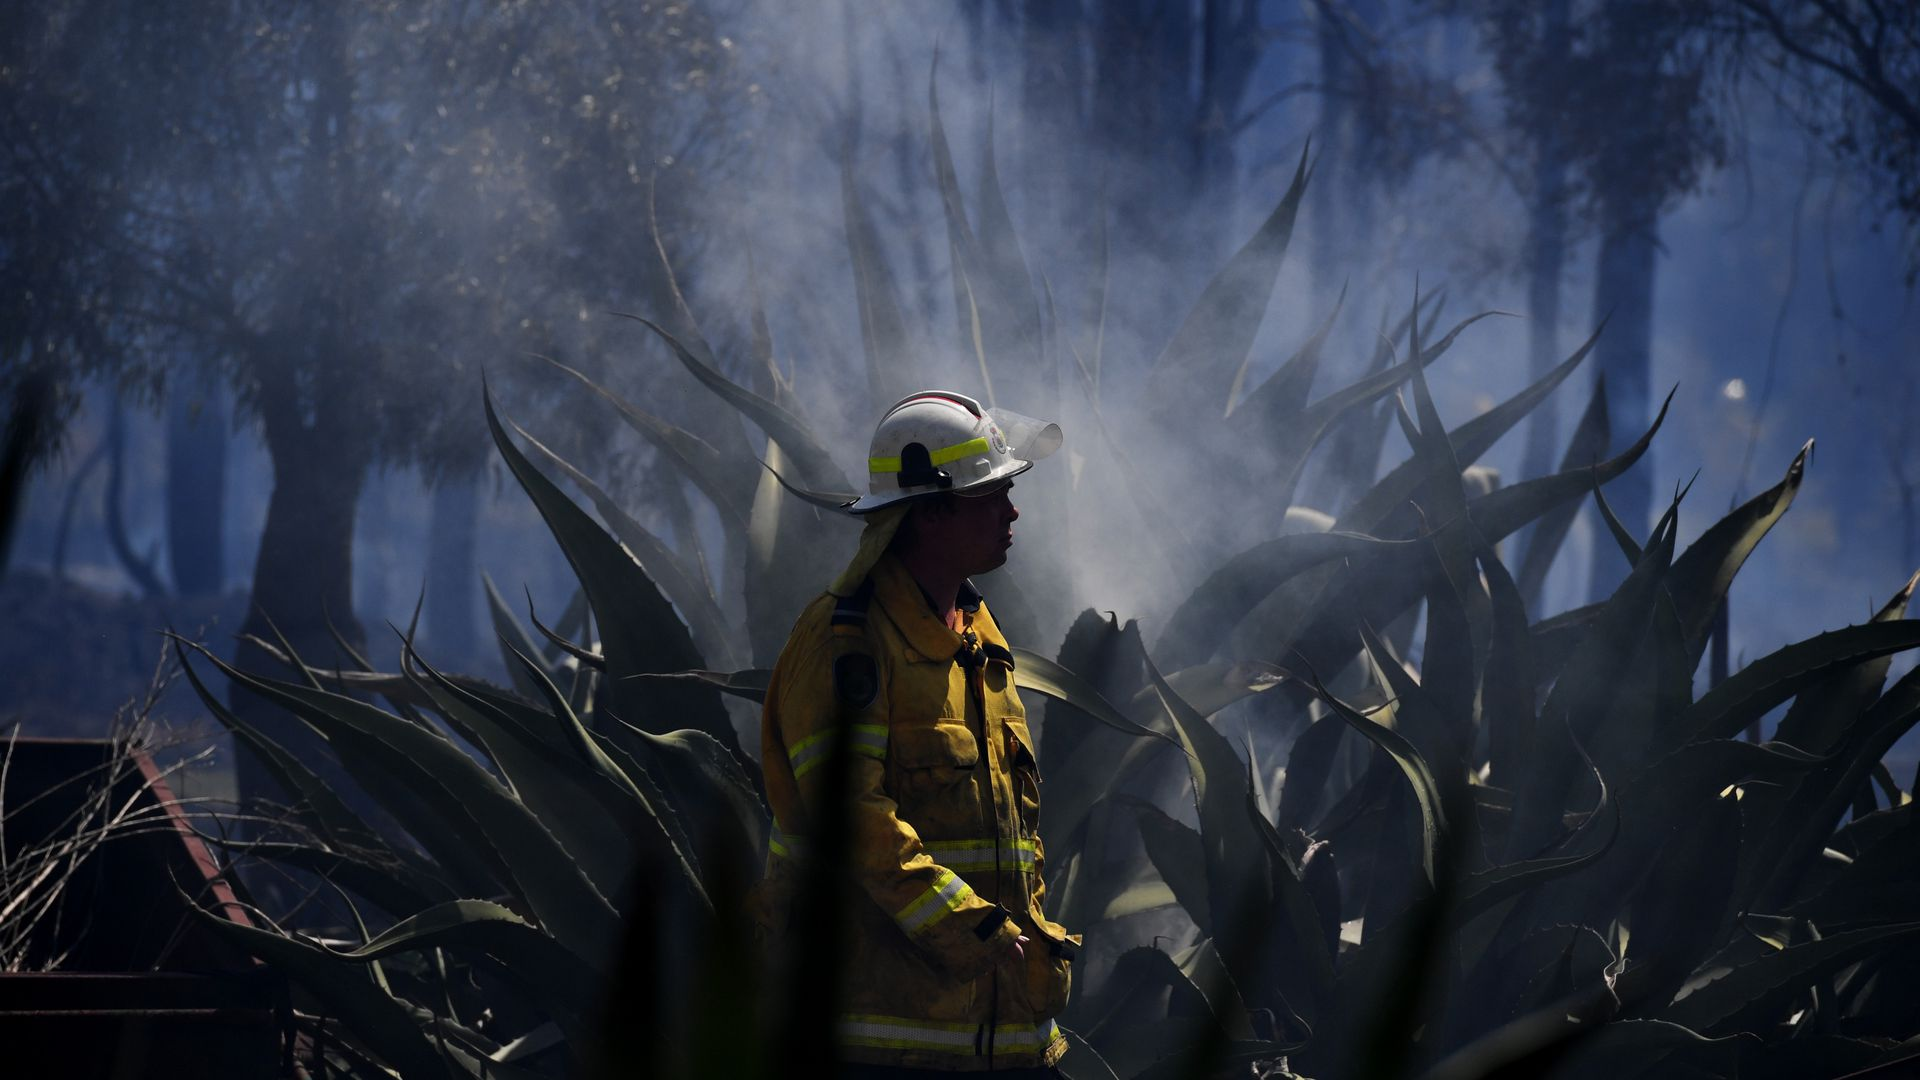 A NSW Rural Fire Service firefighter mops up after a bushfire in the suburb of Llandilo on November 12